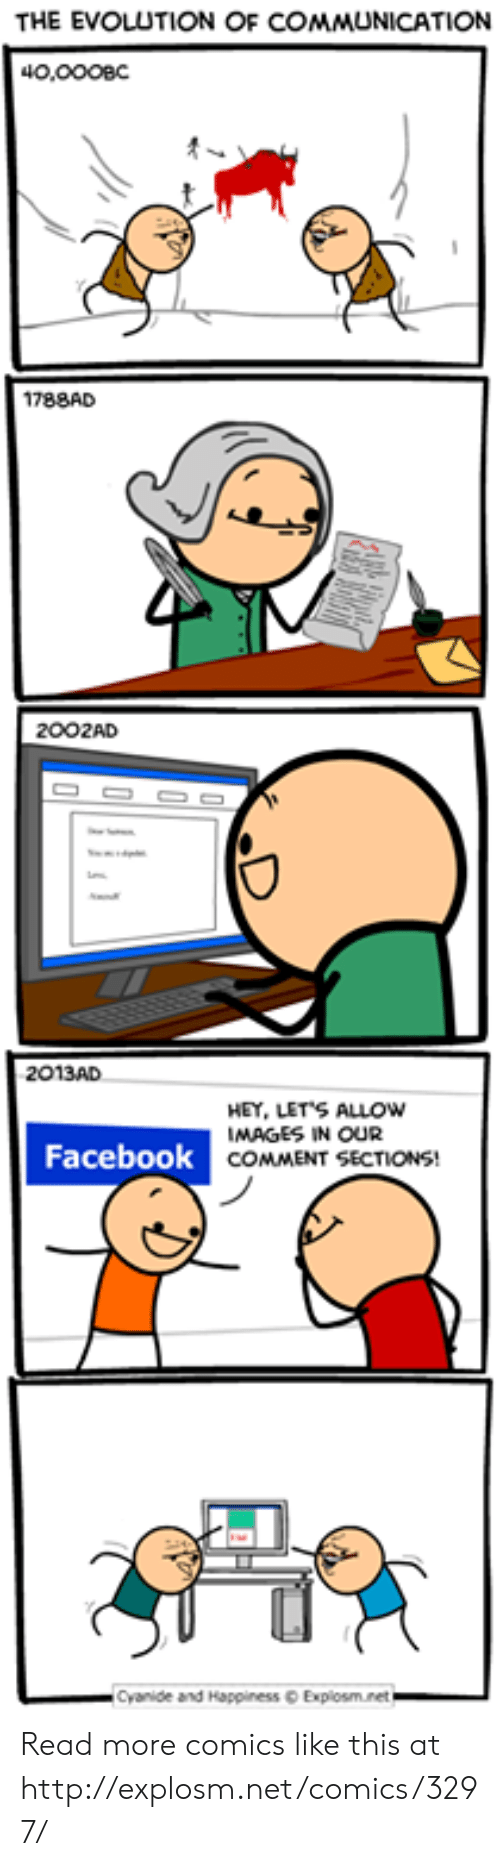 Explosm Net: THE EVOLUTION OF COMMUNICATION  40,000BC  1788AD  2002AD  2013AD  HEY, LETS ALLOW  IMAGES IN OUR  Facebook COMMENT SECTIONS!  Cyanide and Happiness Explosm.net Read more comics like this at http://explosm.net/comics/3297/